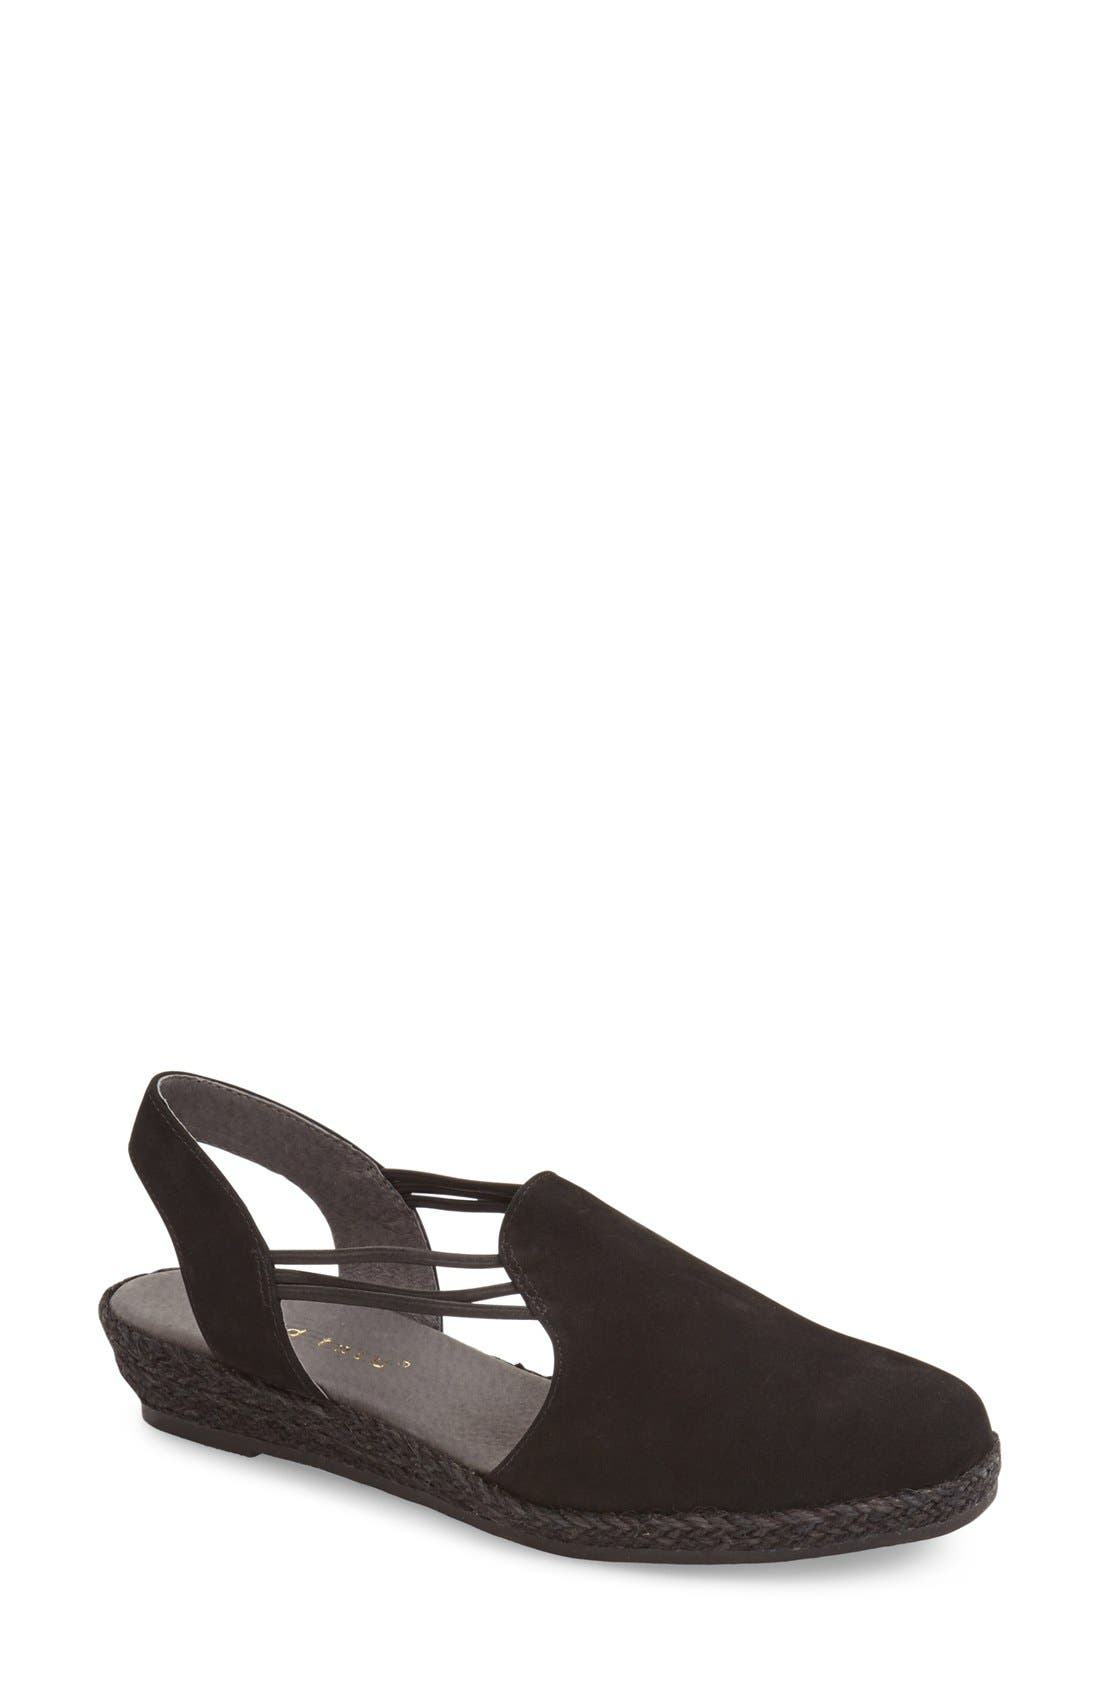 David Tate 'Nelly' Slingback Wedge Sandal (Women)